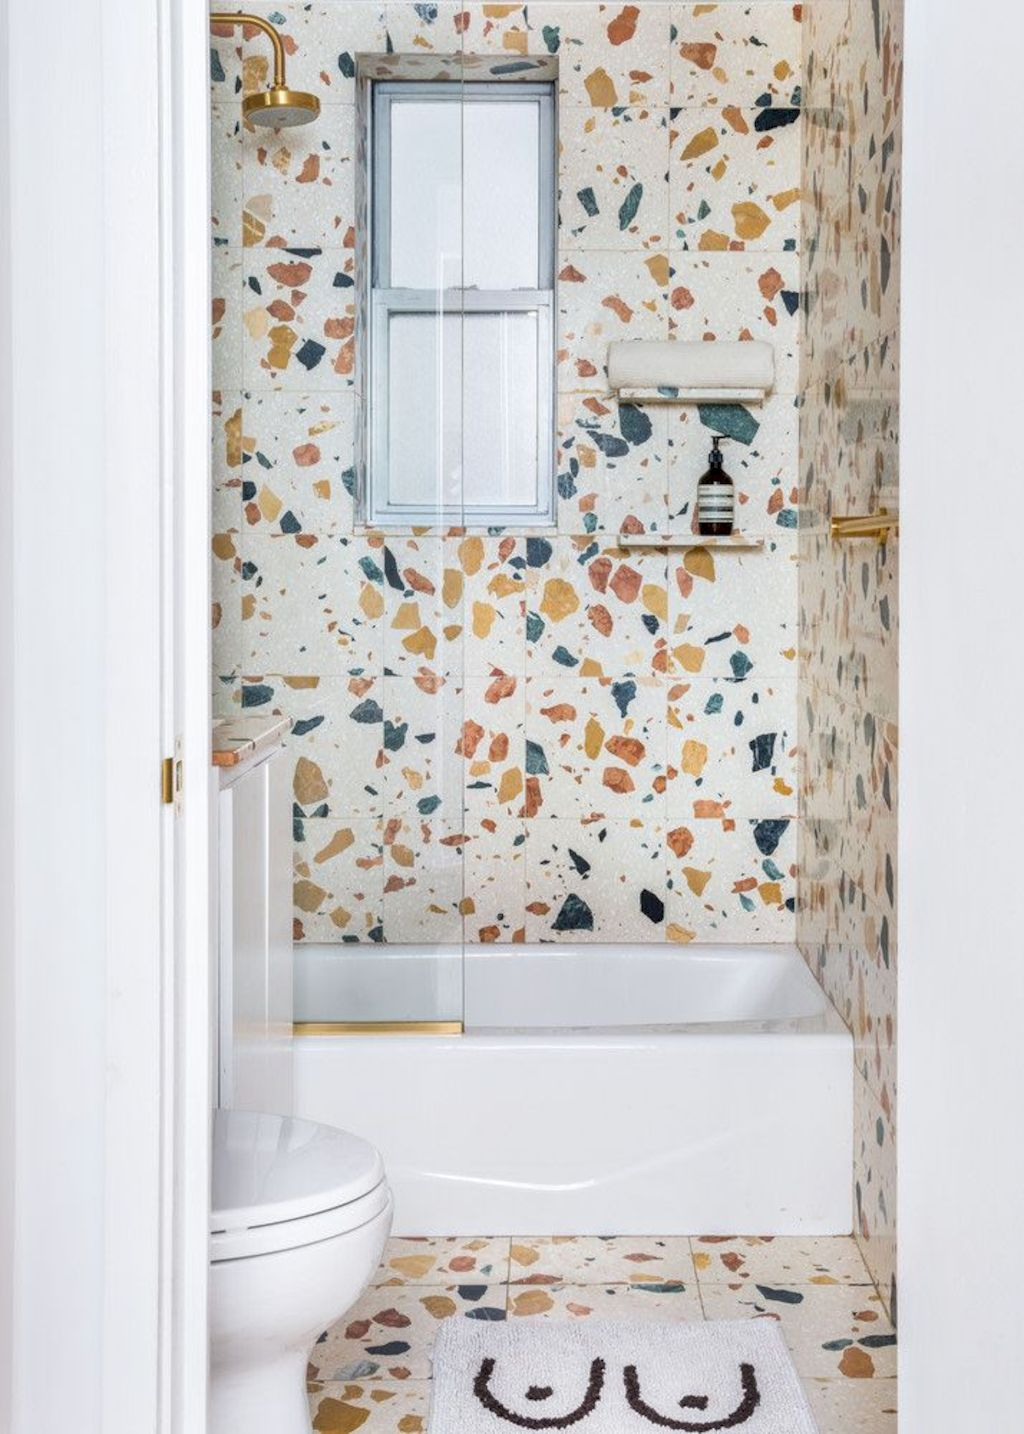 Terrazzo tiles used in bathroom renovation showing classical comeback that bring an artistic retro statement in your home Image 28